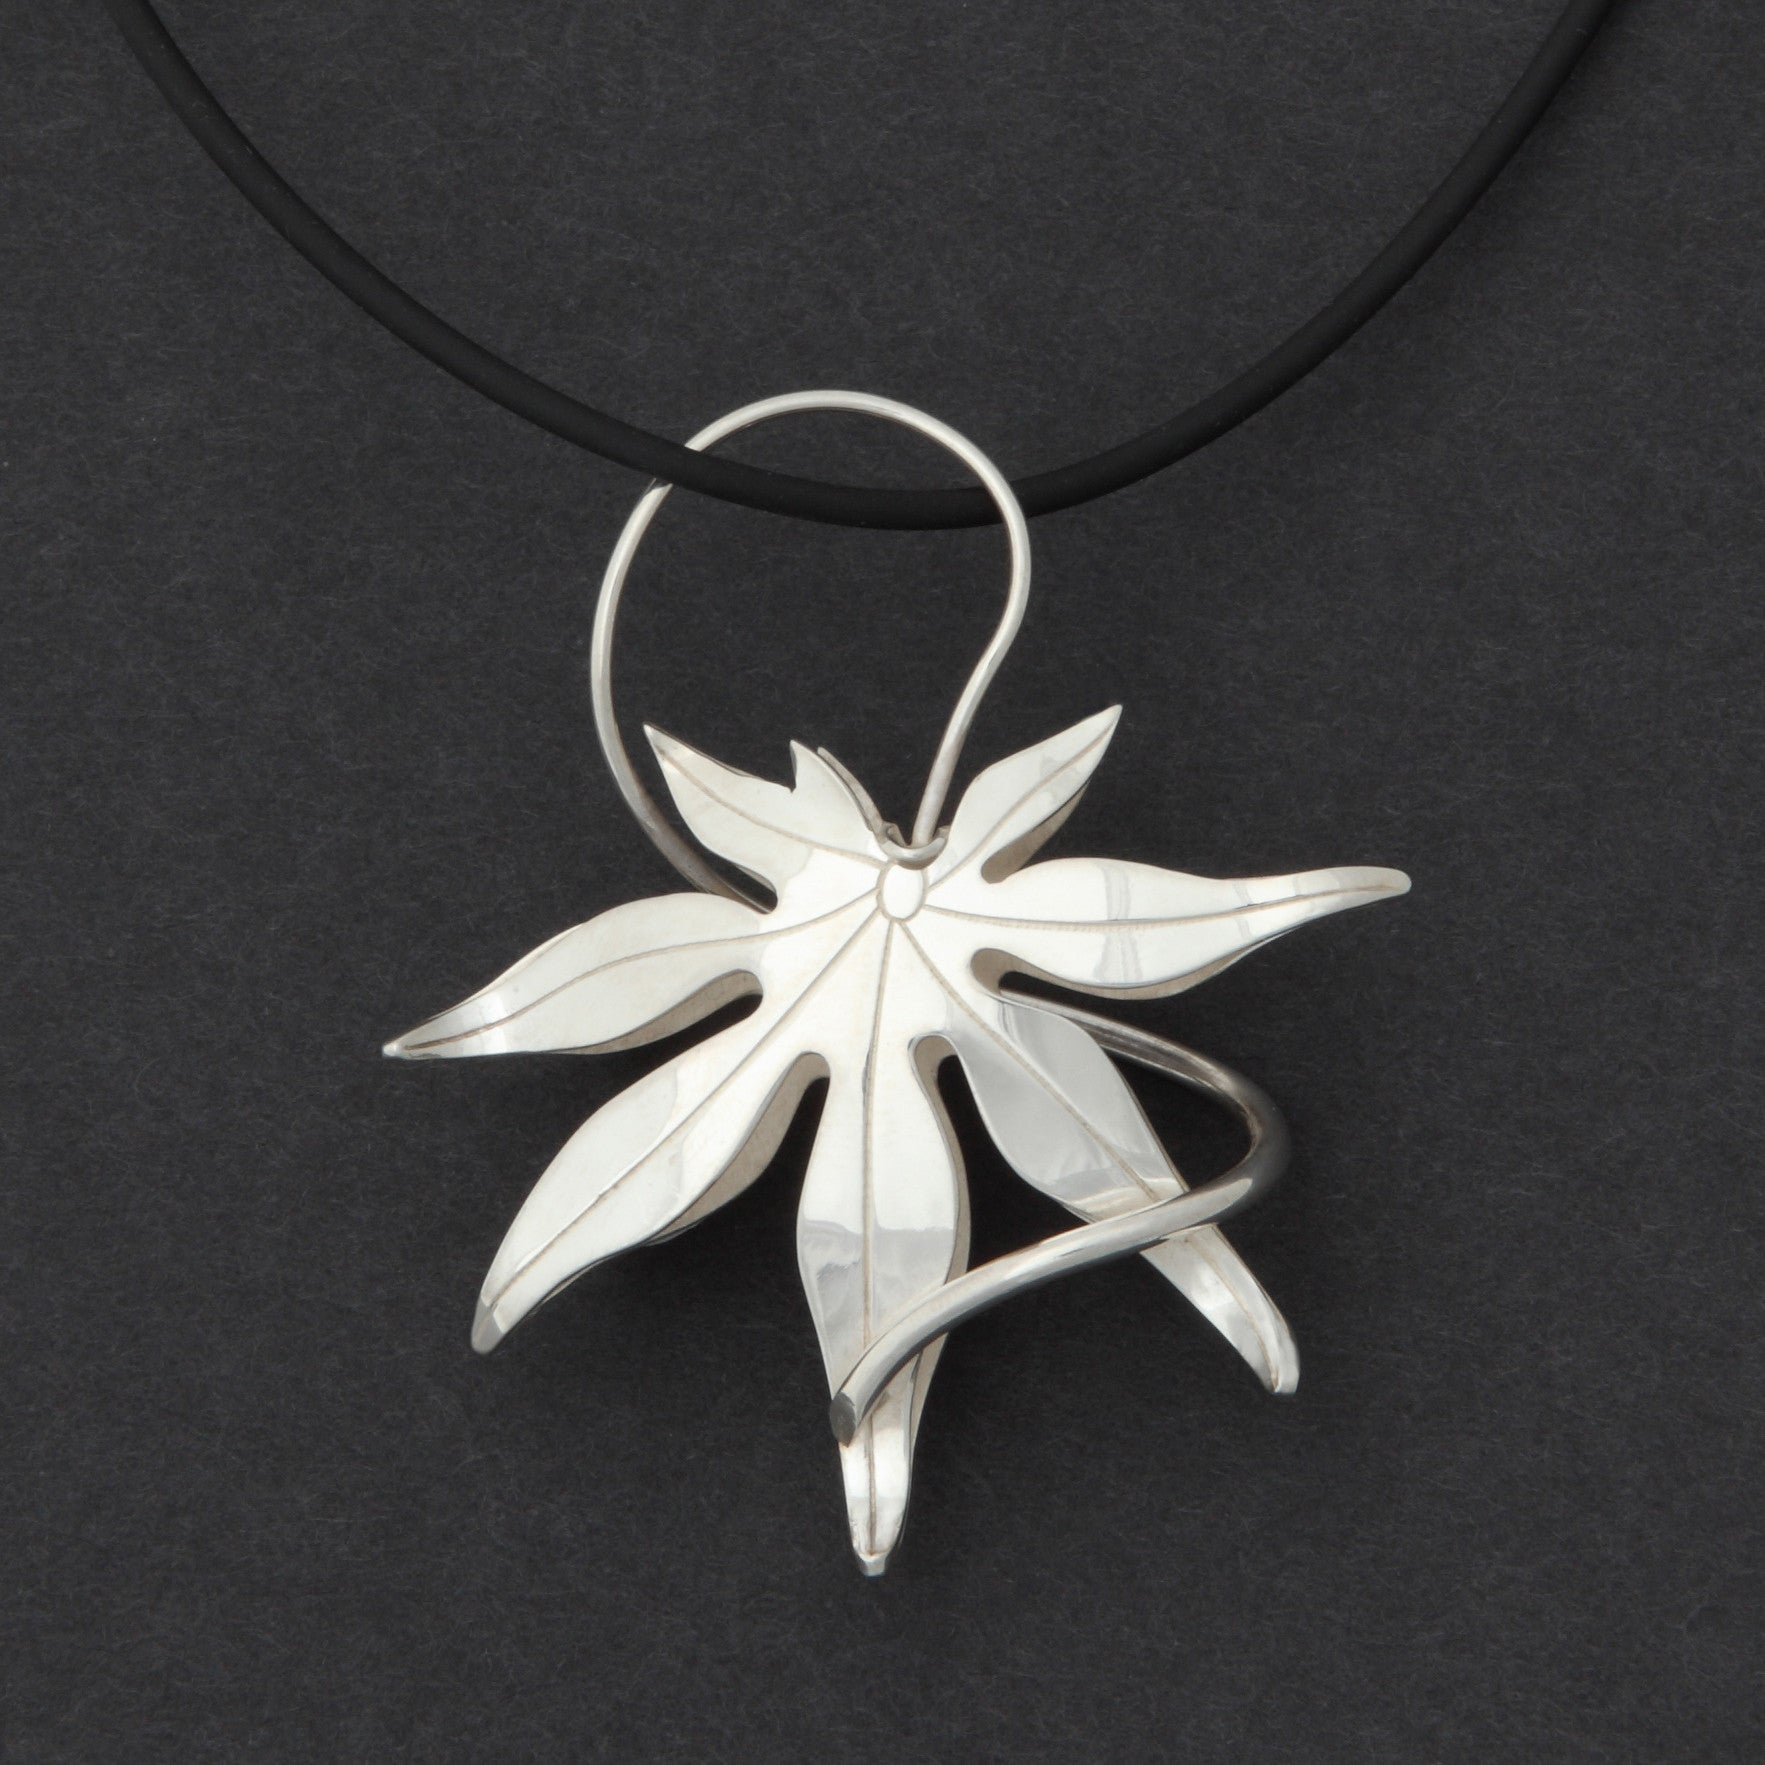 us dazzling maple collection products signature sterling collections leaf metalsmiths silver pendant